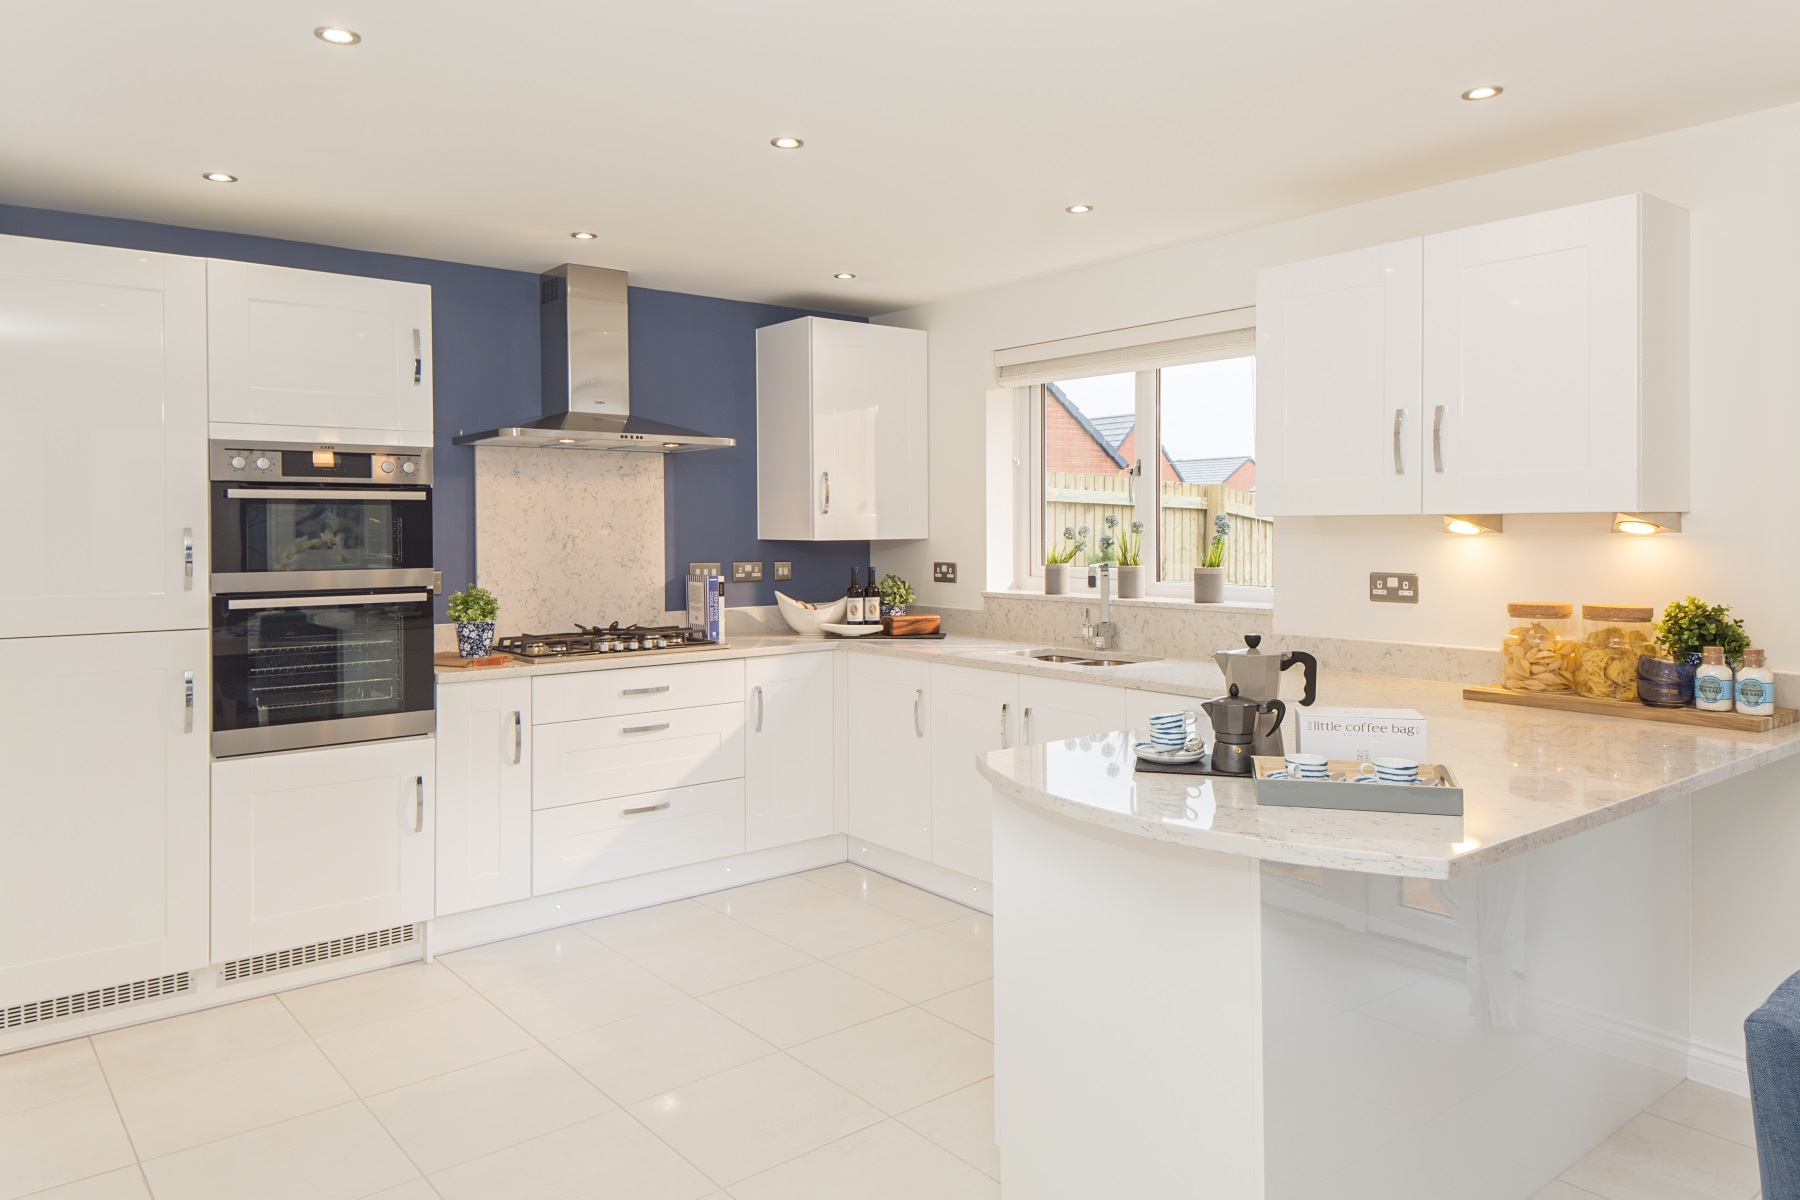 TW Exeter - Chy An Dowr - Wareham example kitchen